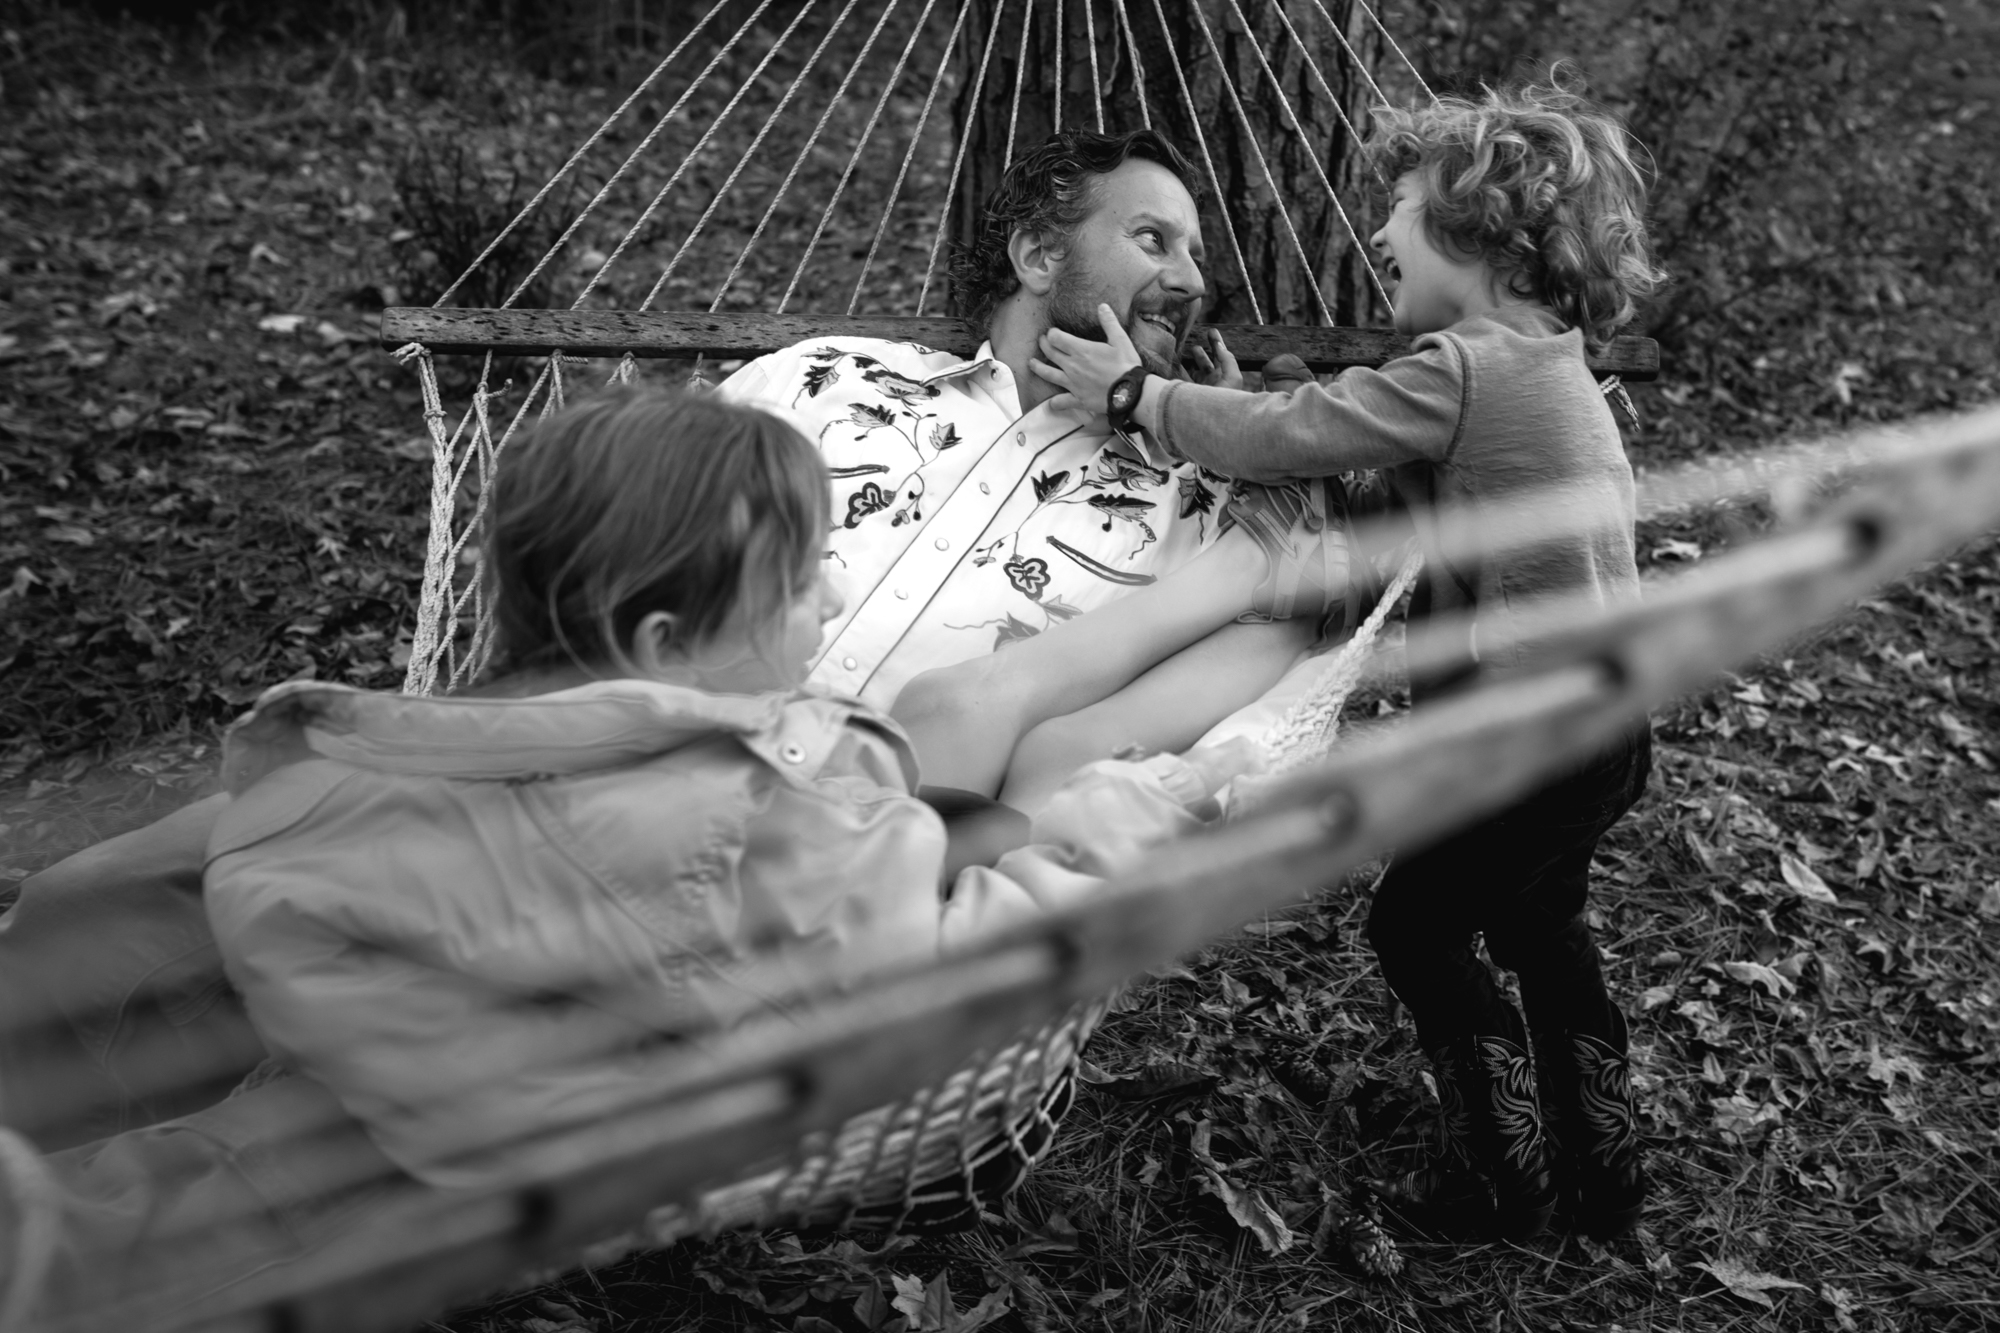 A boy holds his dad's face who is on a hammock with a girl